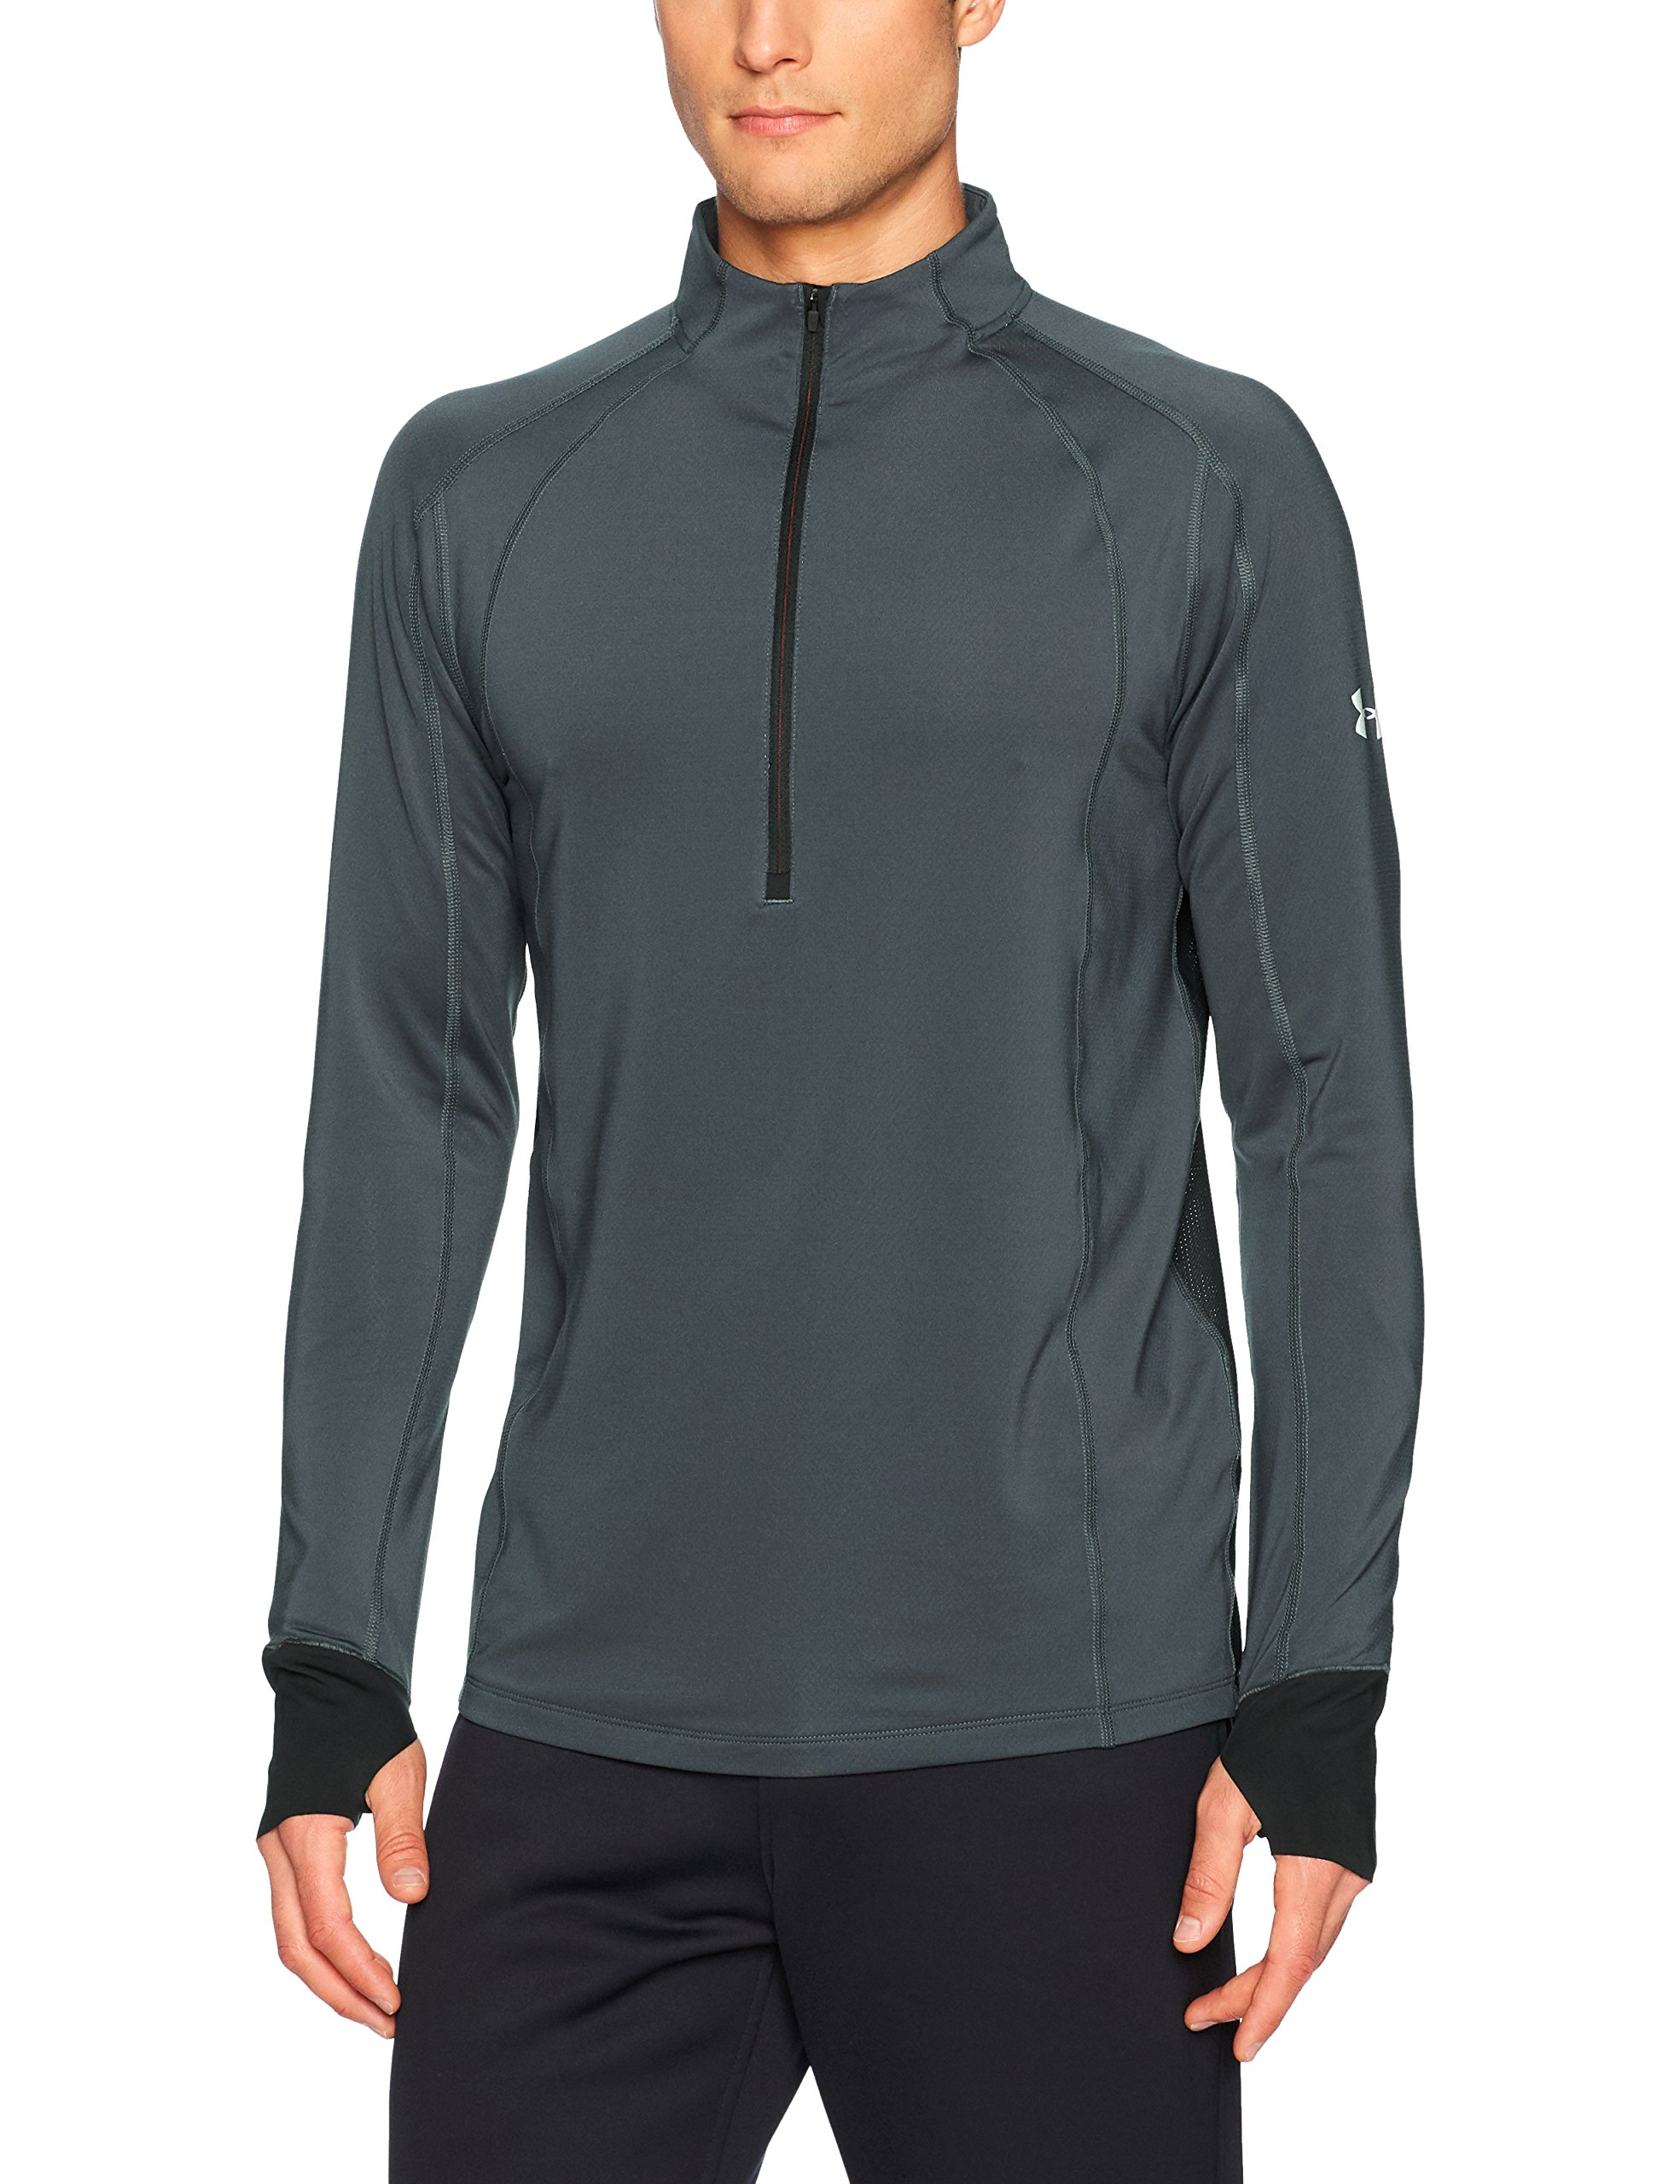 Under Armour Men's ColdGear Reactor Run ½ Zip,Stealth Gray (008)/Reflective, Medium